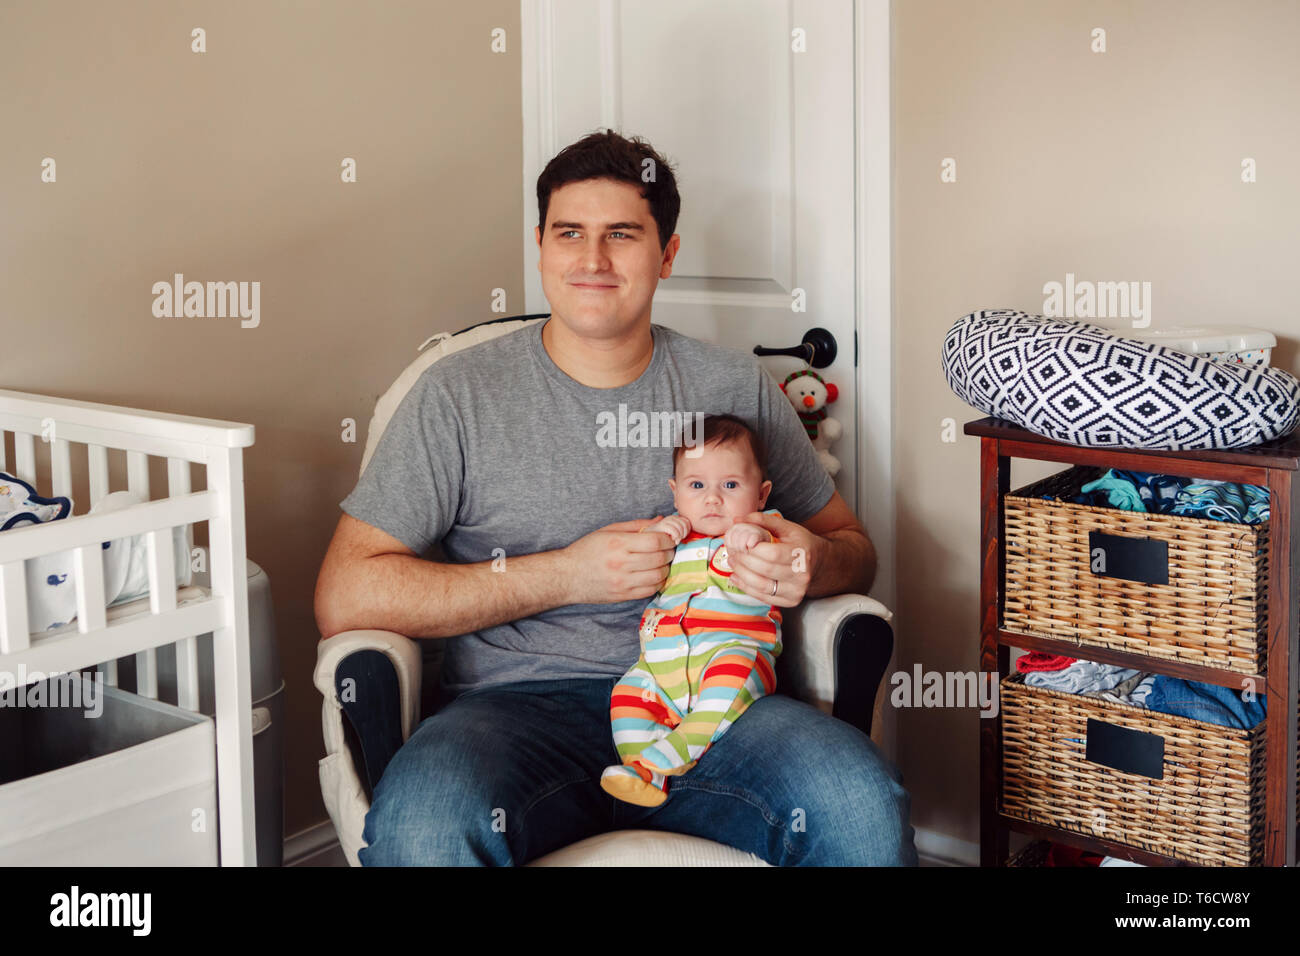 Young Caucasian father sitting in kids nursery room with newborn baby. Male man parent holding child on his hands lap. Authentic lifestyle adorable mo - Stock Image